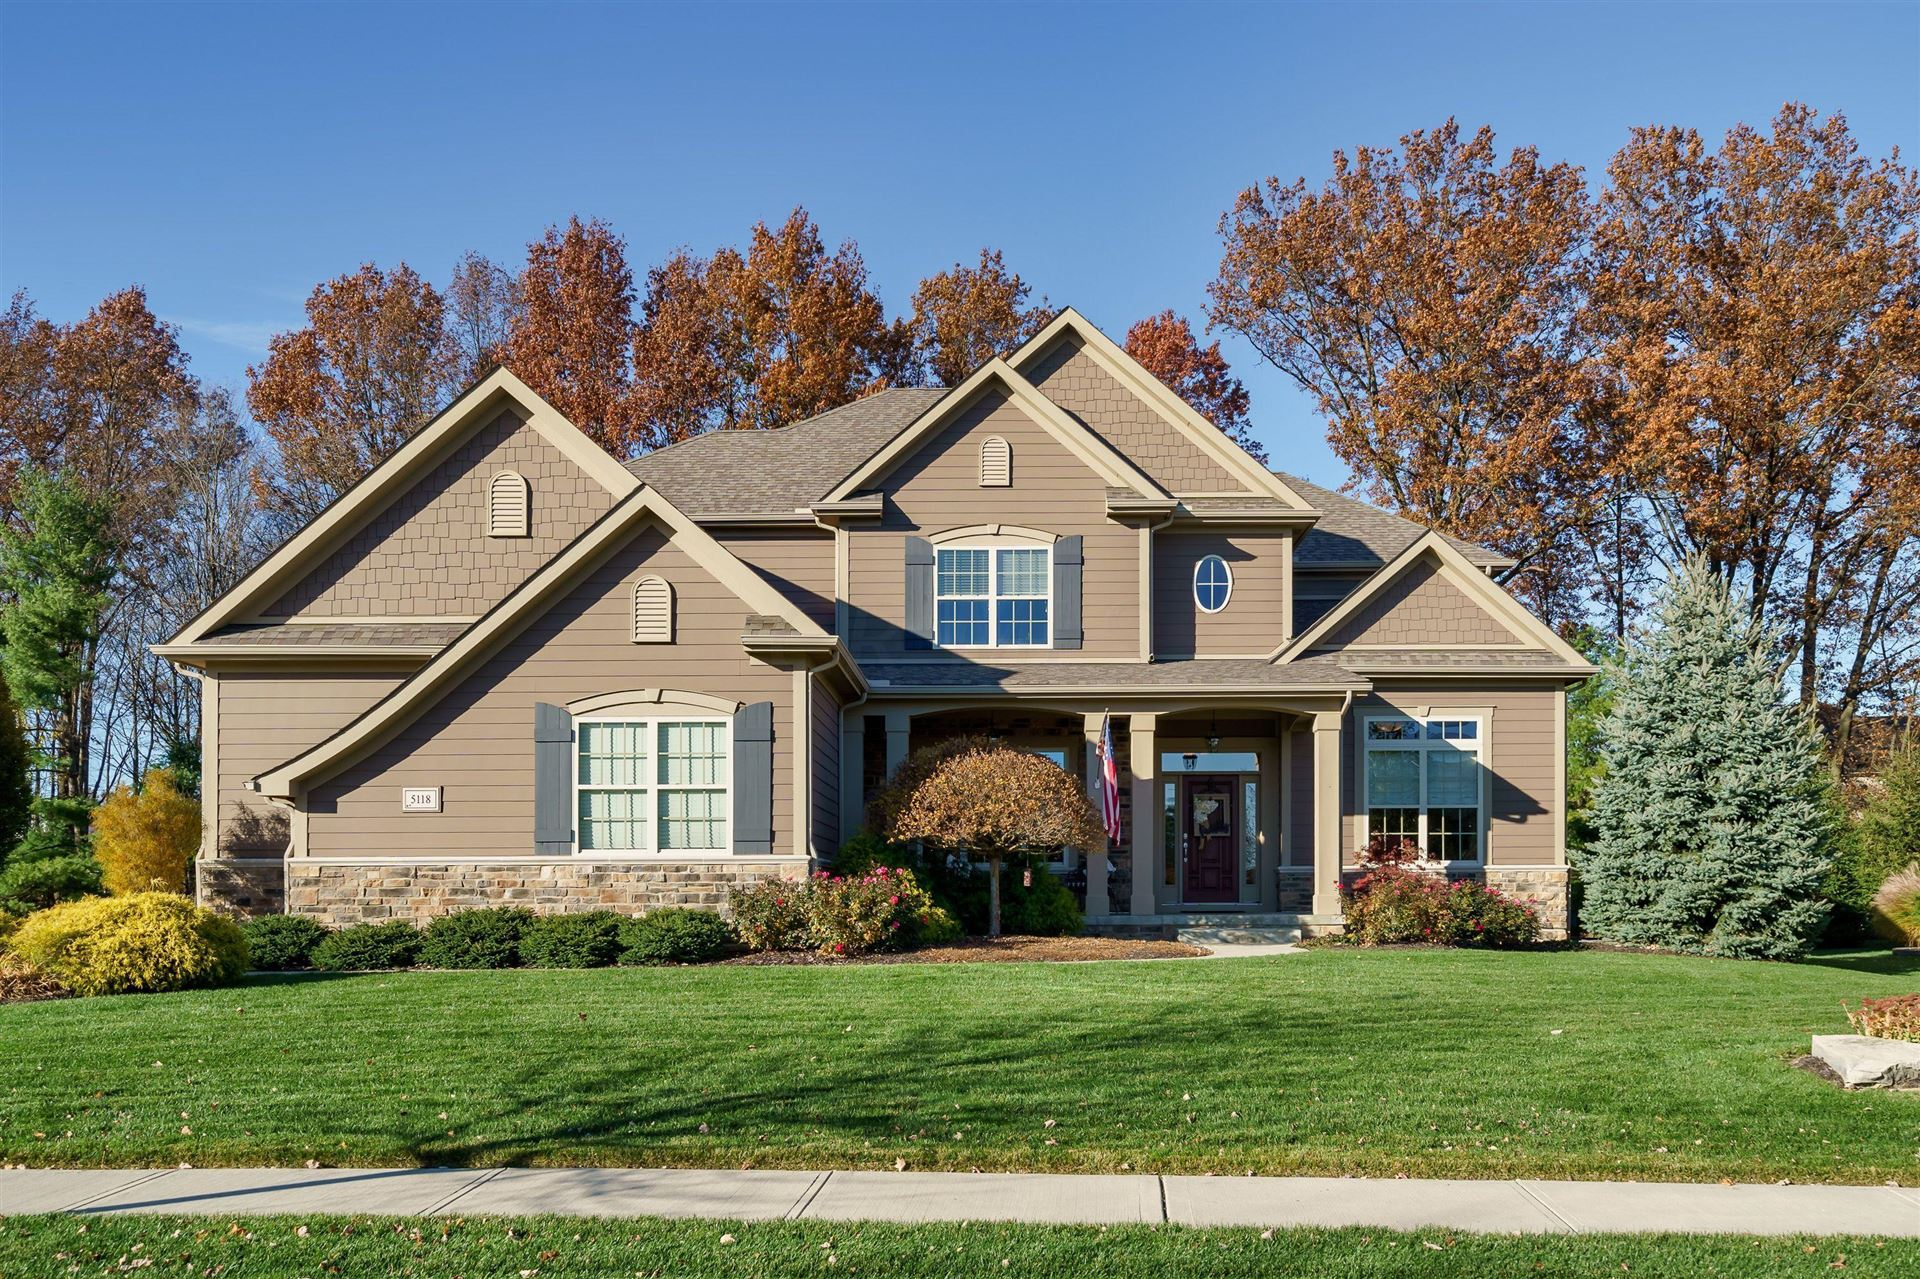 Photo of 5118 Blessing Court, Galena, OH 43021 (MLS # 221000334)